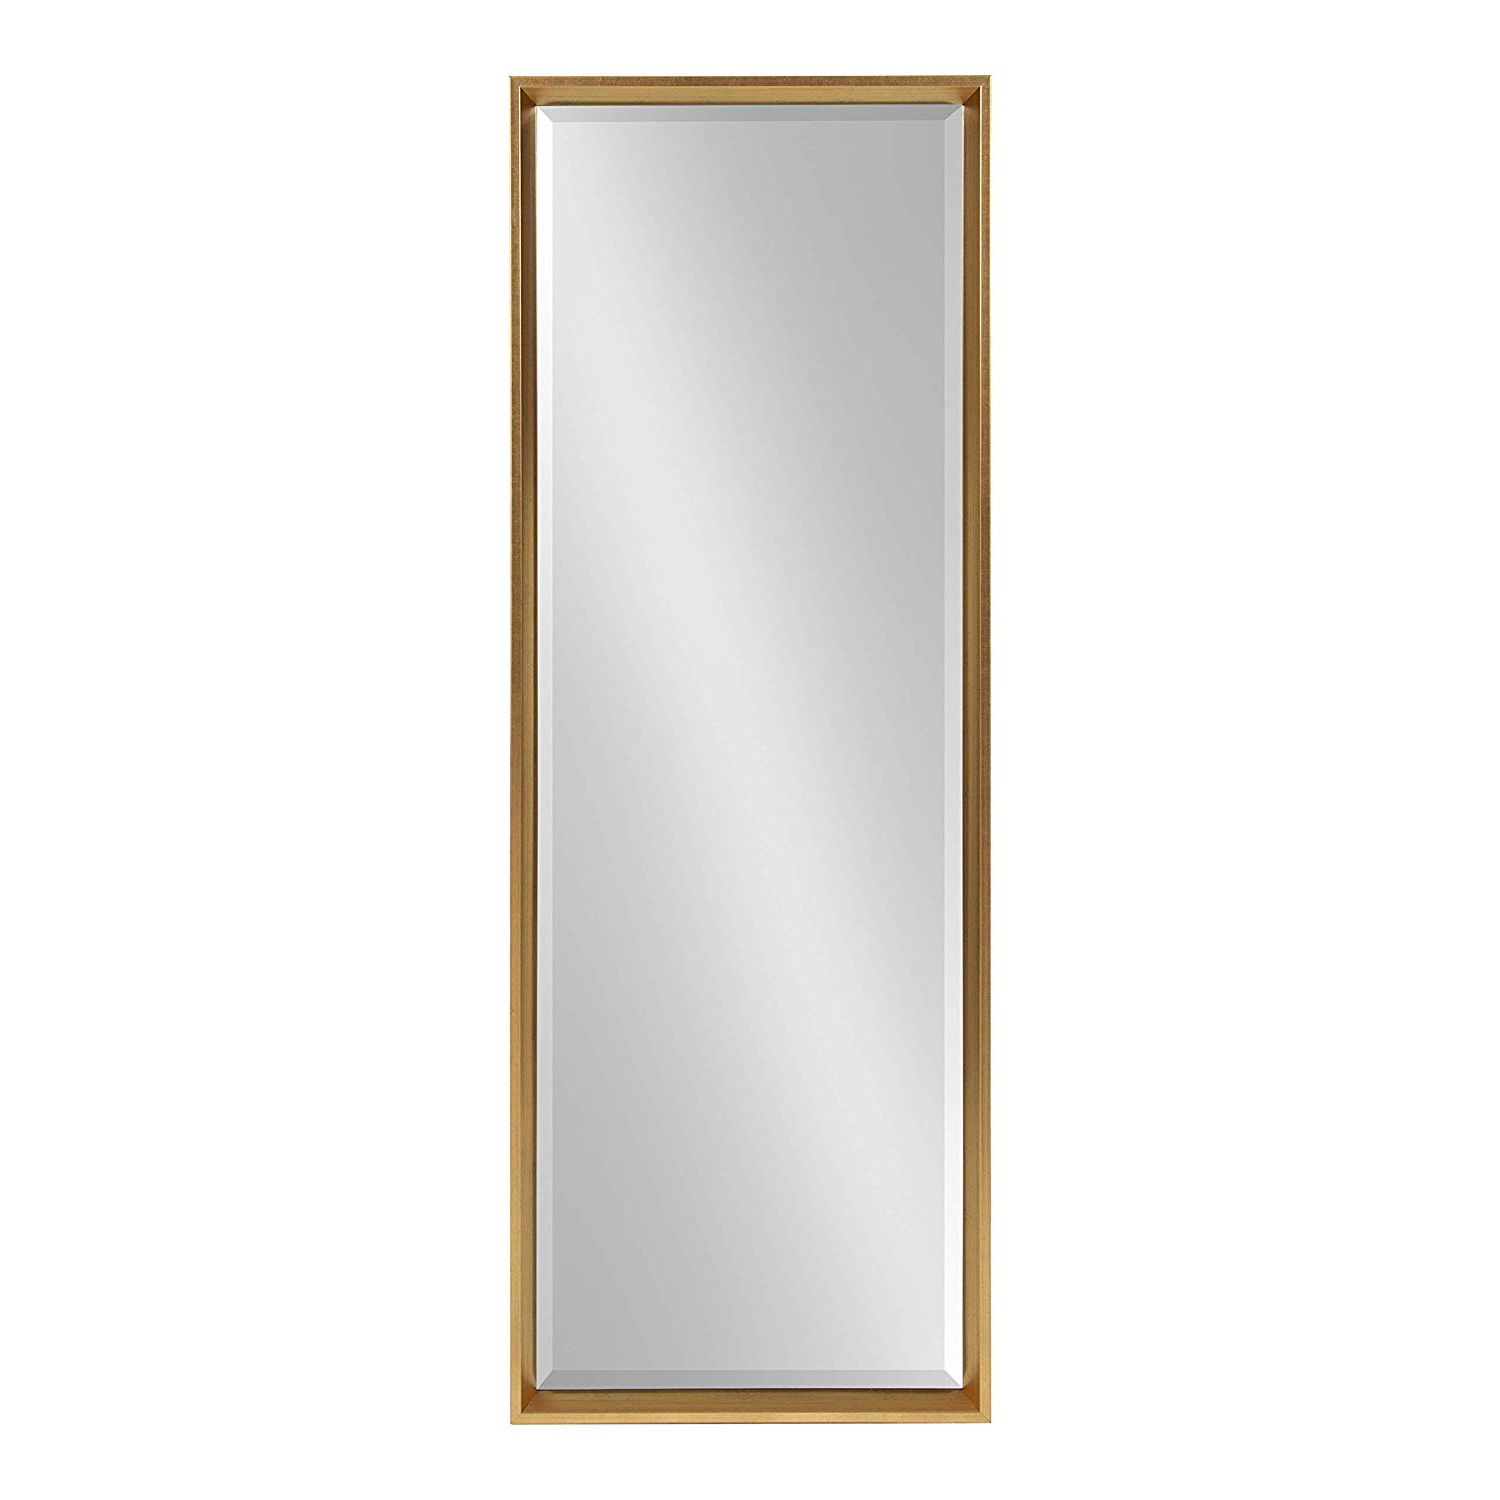 Kate And Laurel Calter Modern Framed Full Length Beveled Wall Mirror,  17.5X49.5 Gold Within Trendy Modern Full Length Wall Mirrors (Gallery 7 of 20)